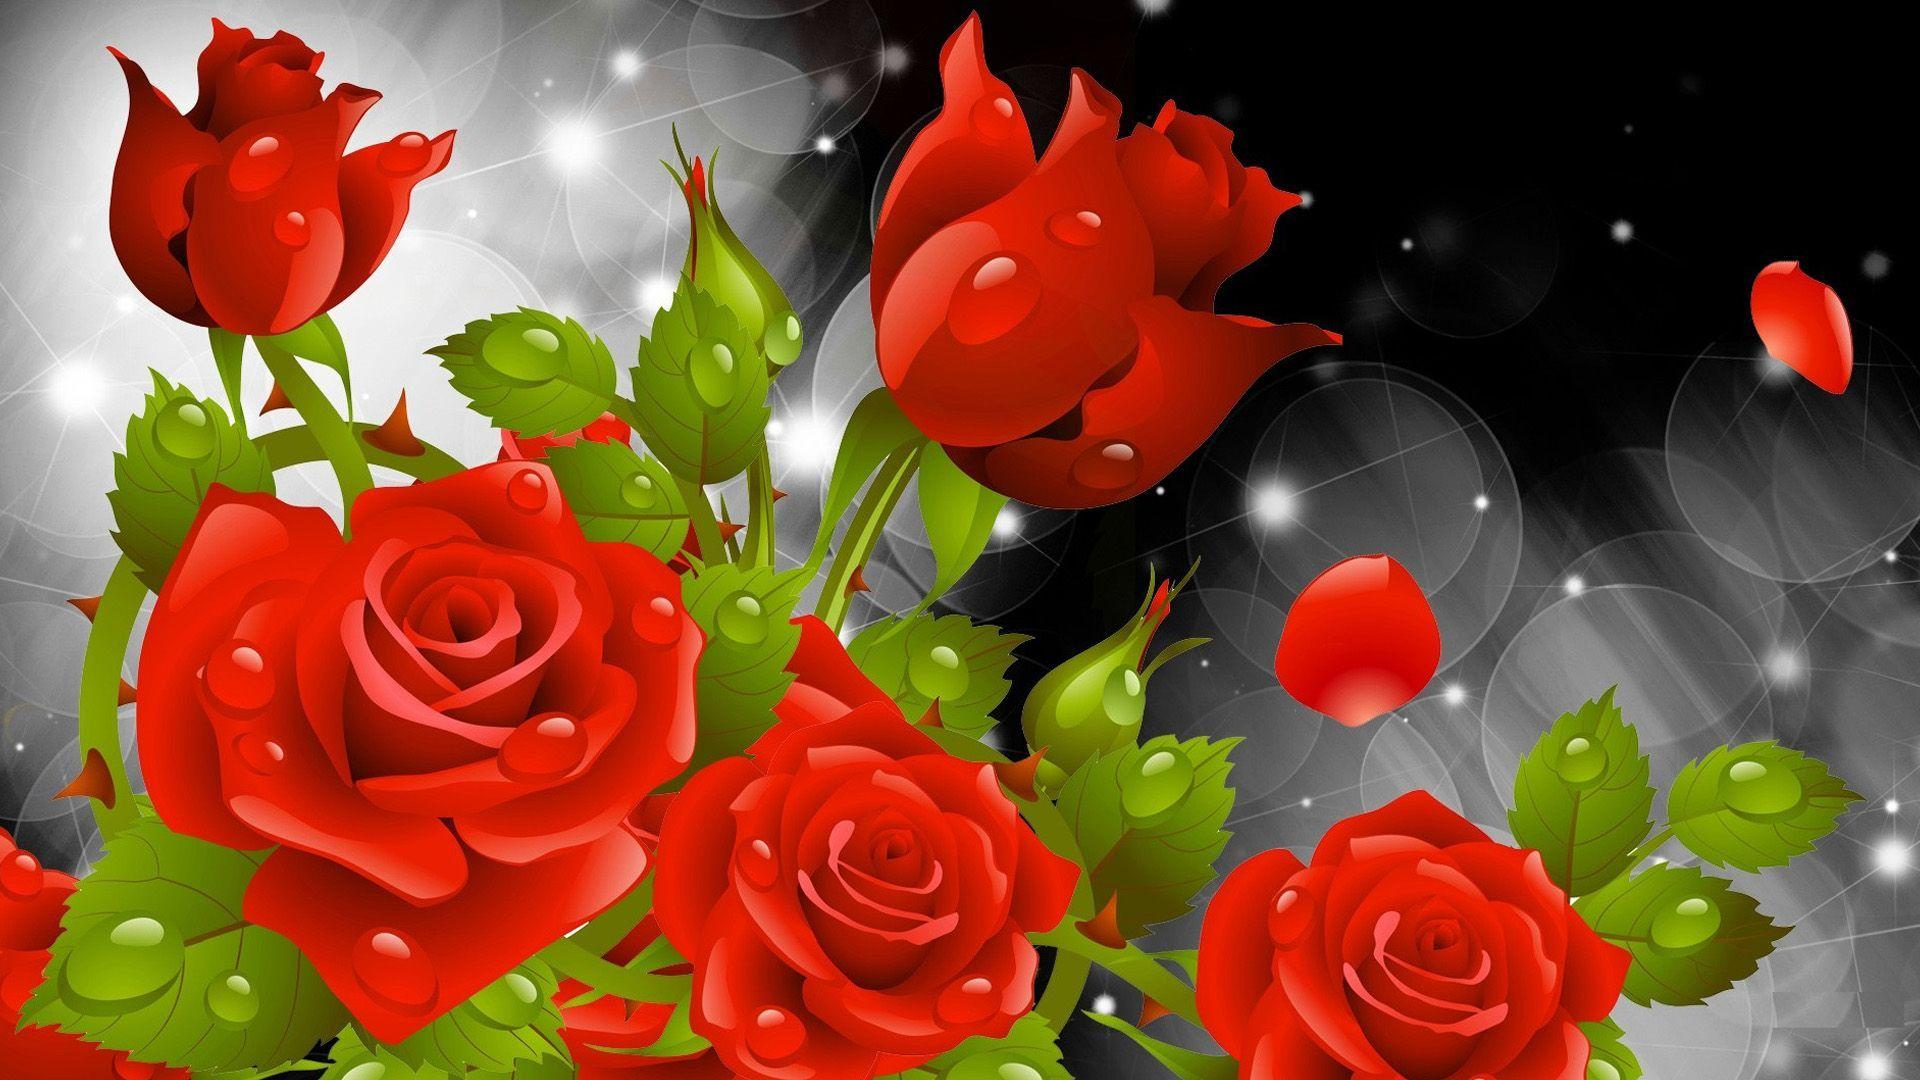 Wallpapers Hd Nature Flower Rose Wallpaper Cave